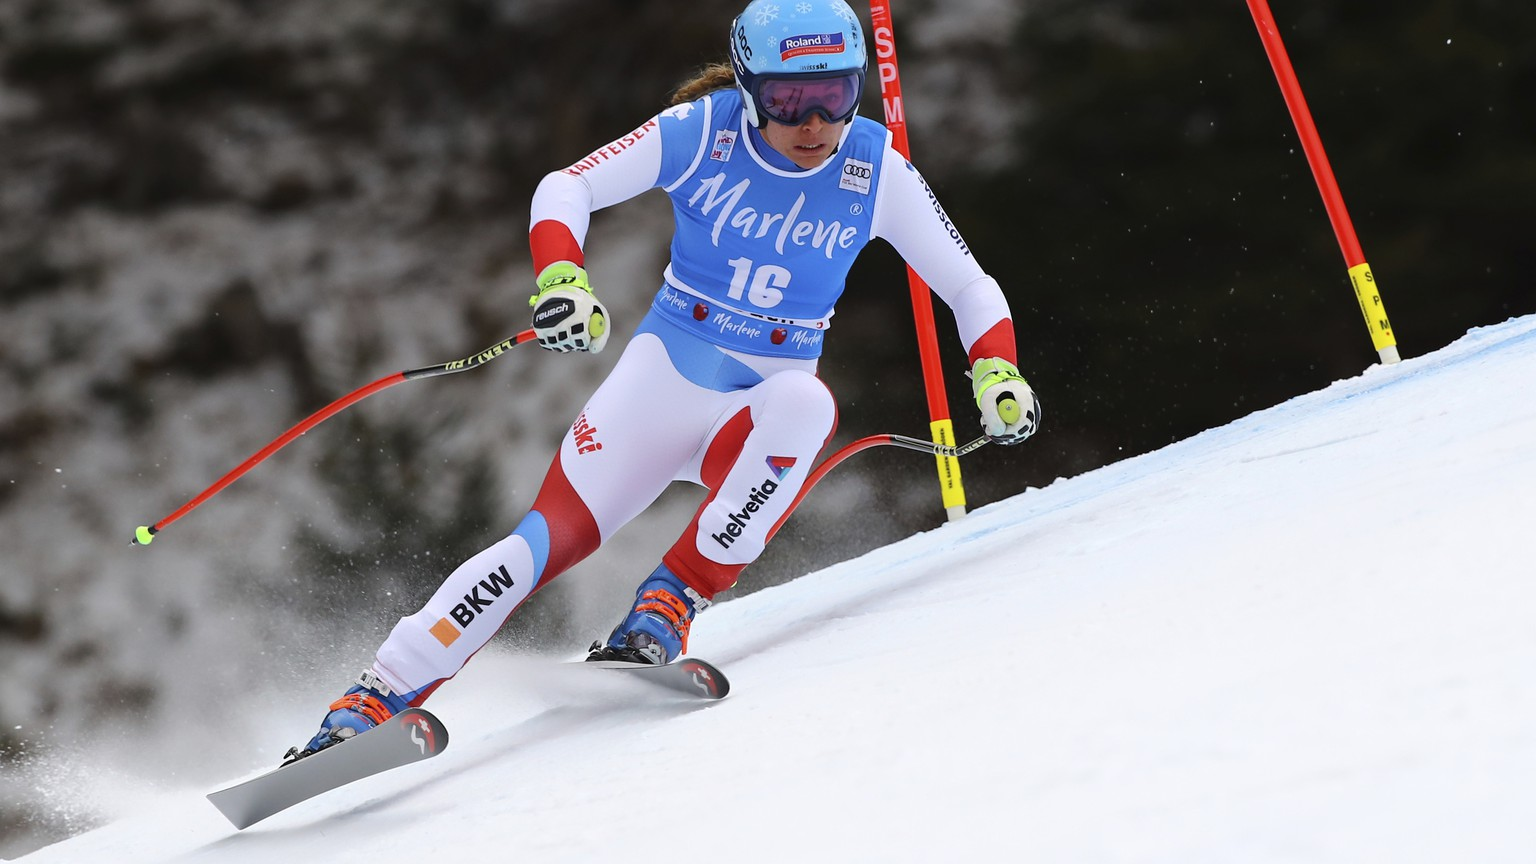 Switzerland's Jasmine Flury competes during an alpine ski, women's World Cup Super-G, in Val Gardena, Italy, Wednesday, Dec. 19, 2018. (AP Photo/Marco Trovati)